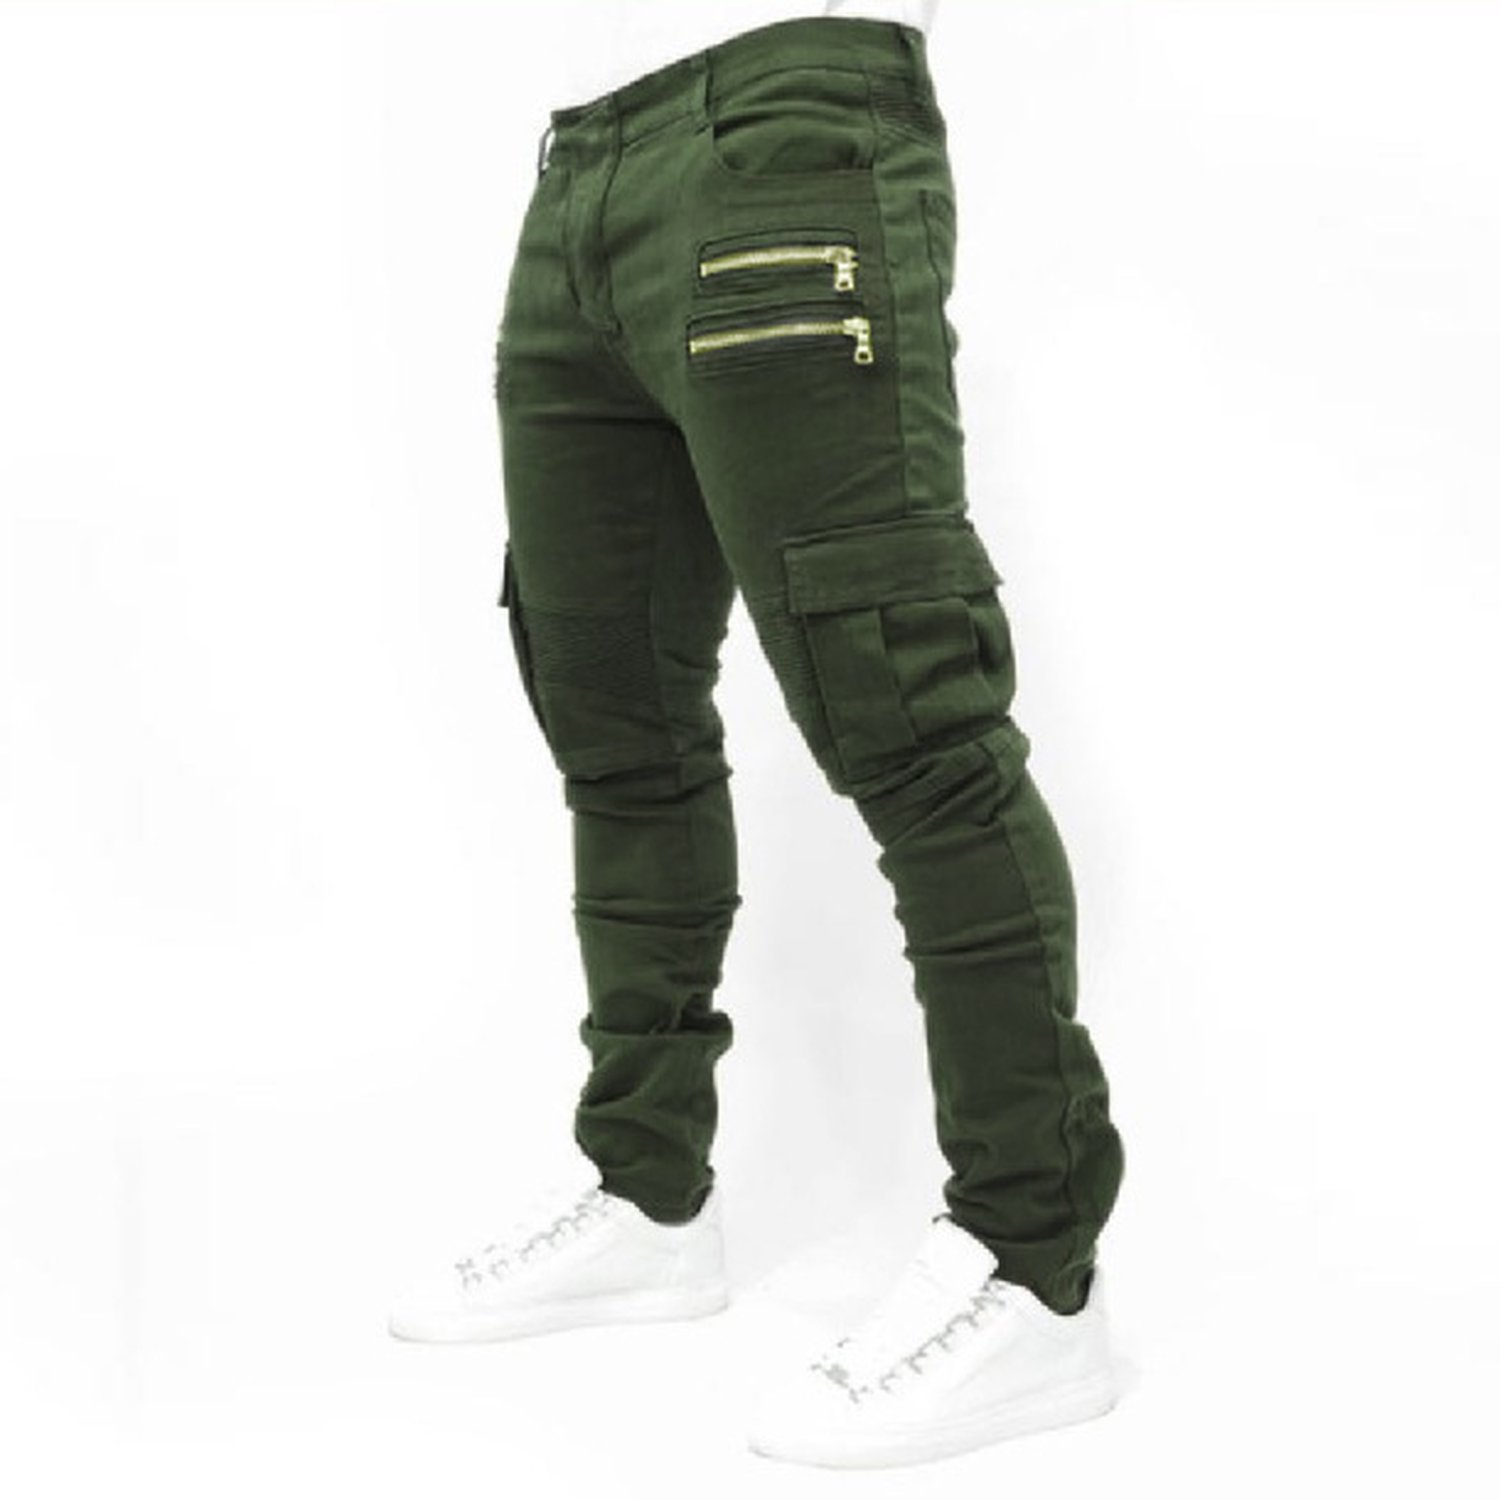 Men's Trousers Wish Men's Folding Elastic Jeans Cotton spot Trousers,Green,L